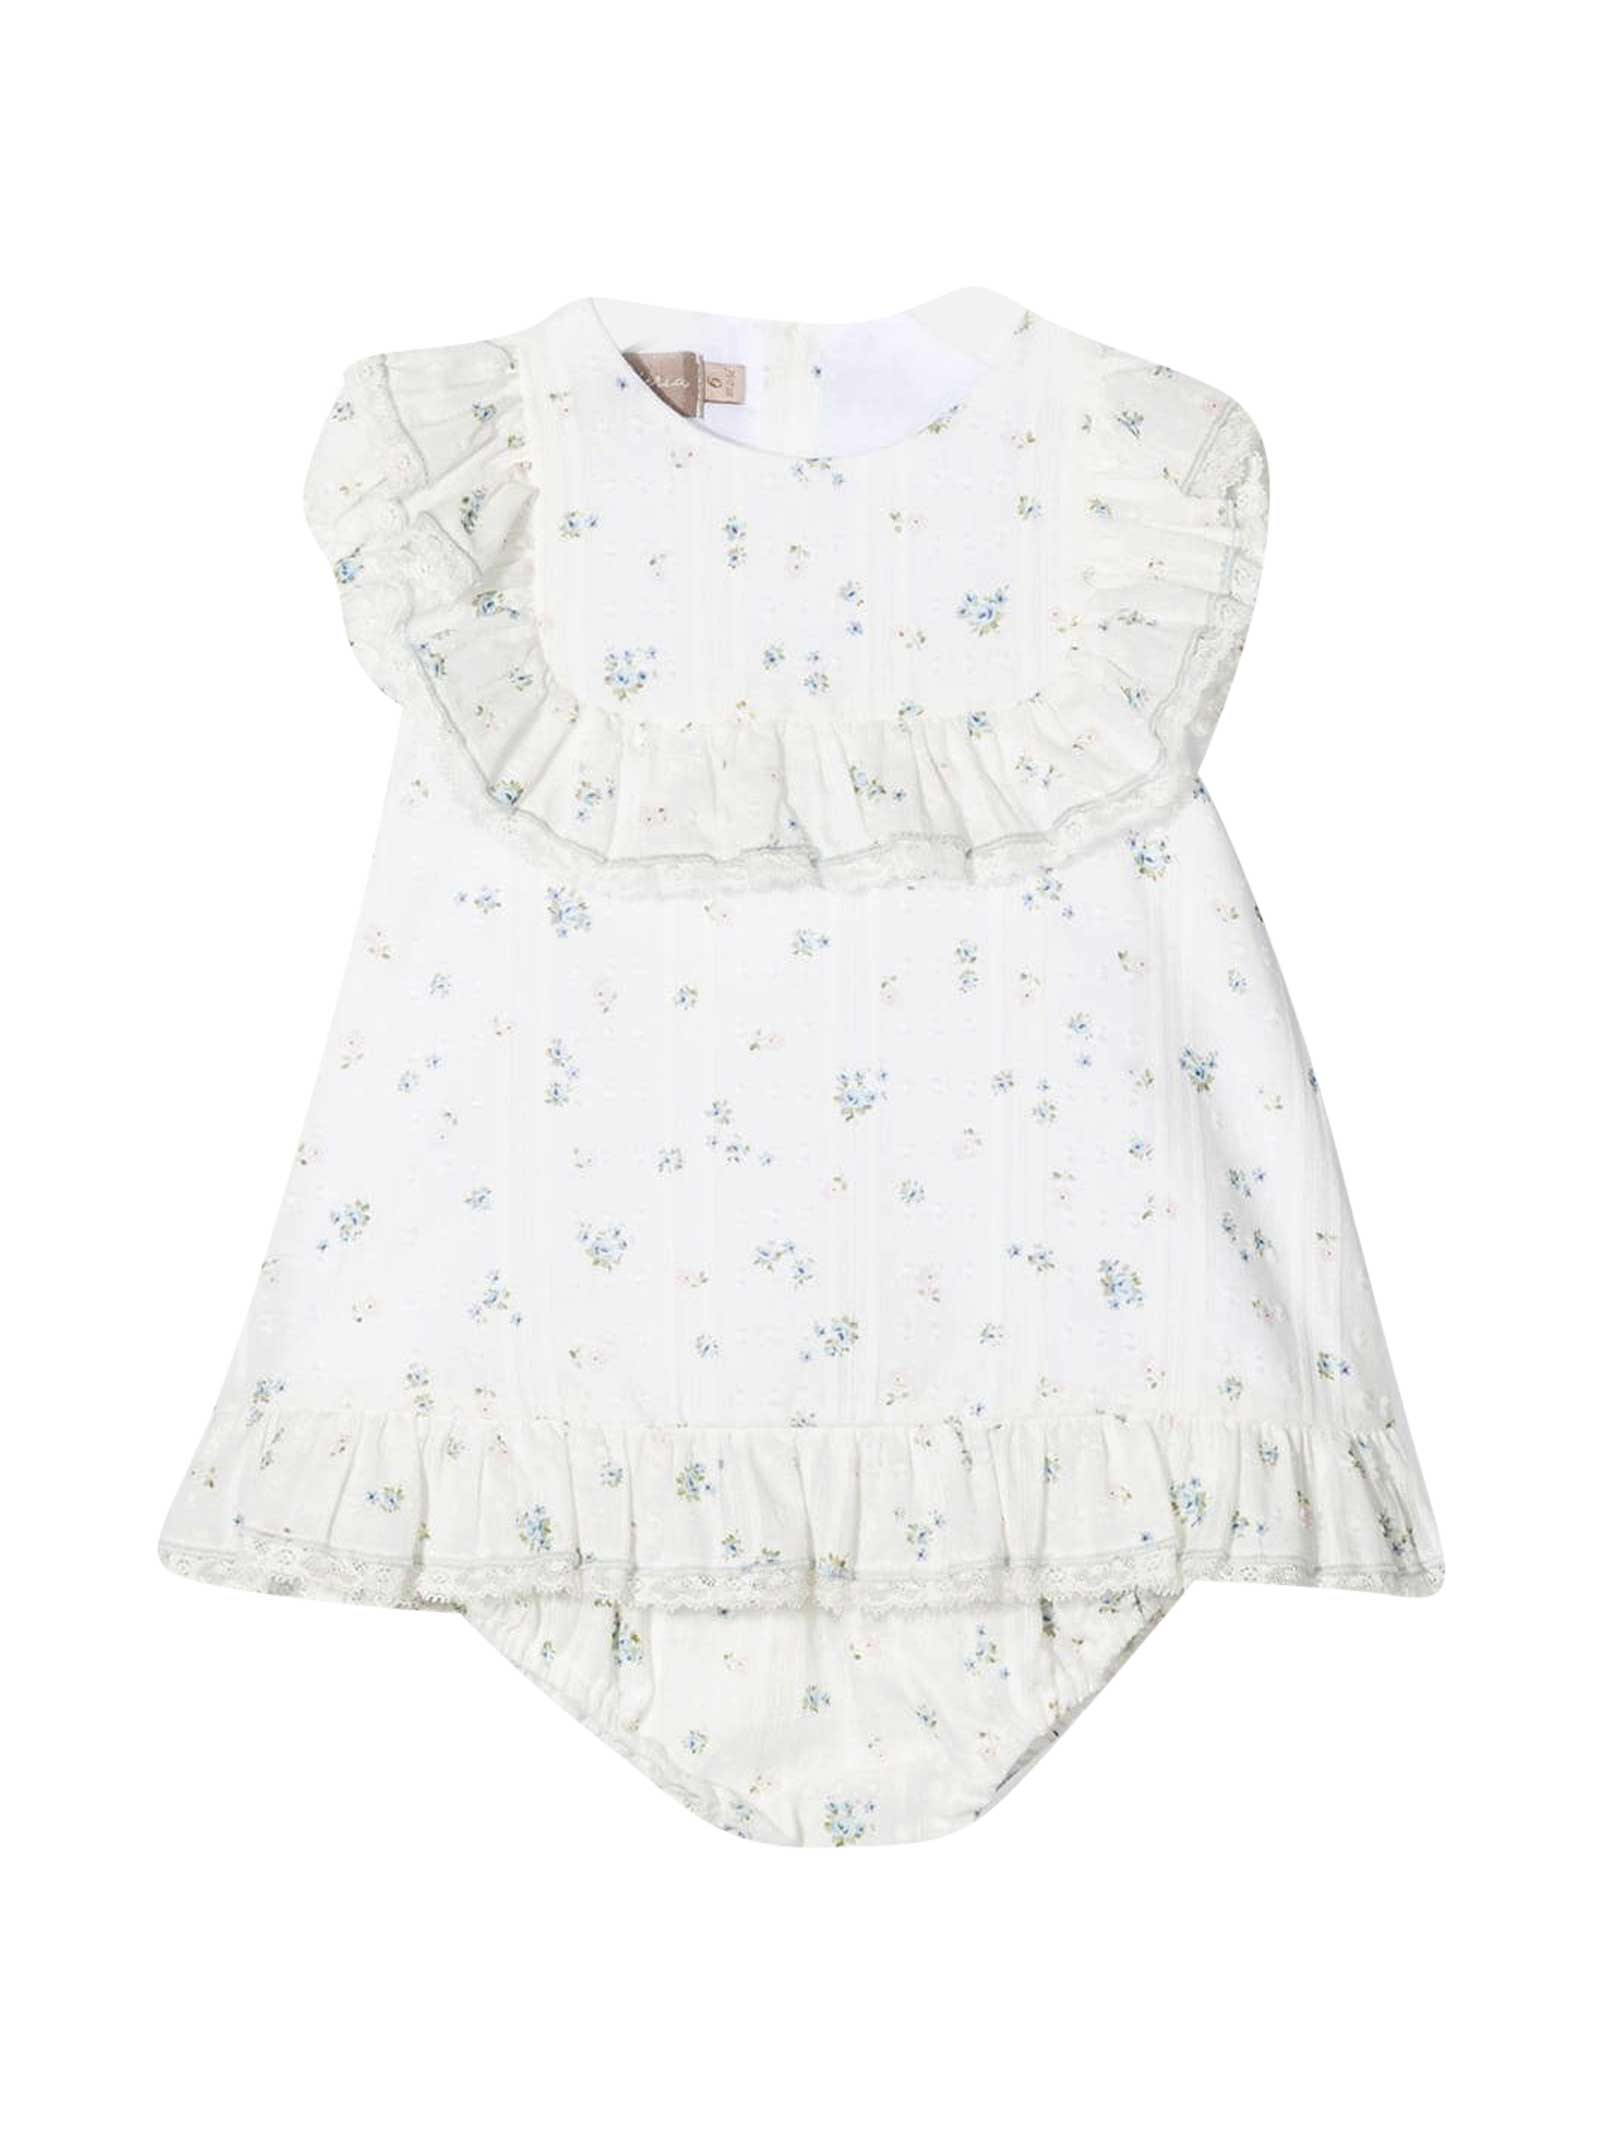 La Stupenderia Cottons WHITE FLORAL DRESS WITH RUFFLES